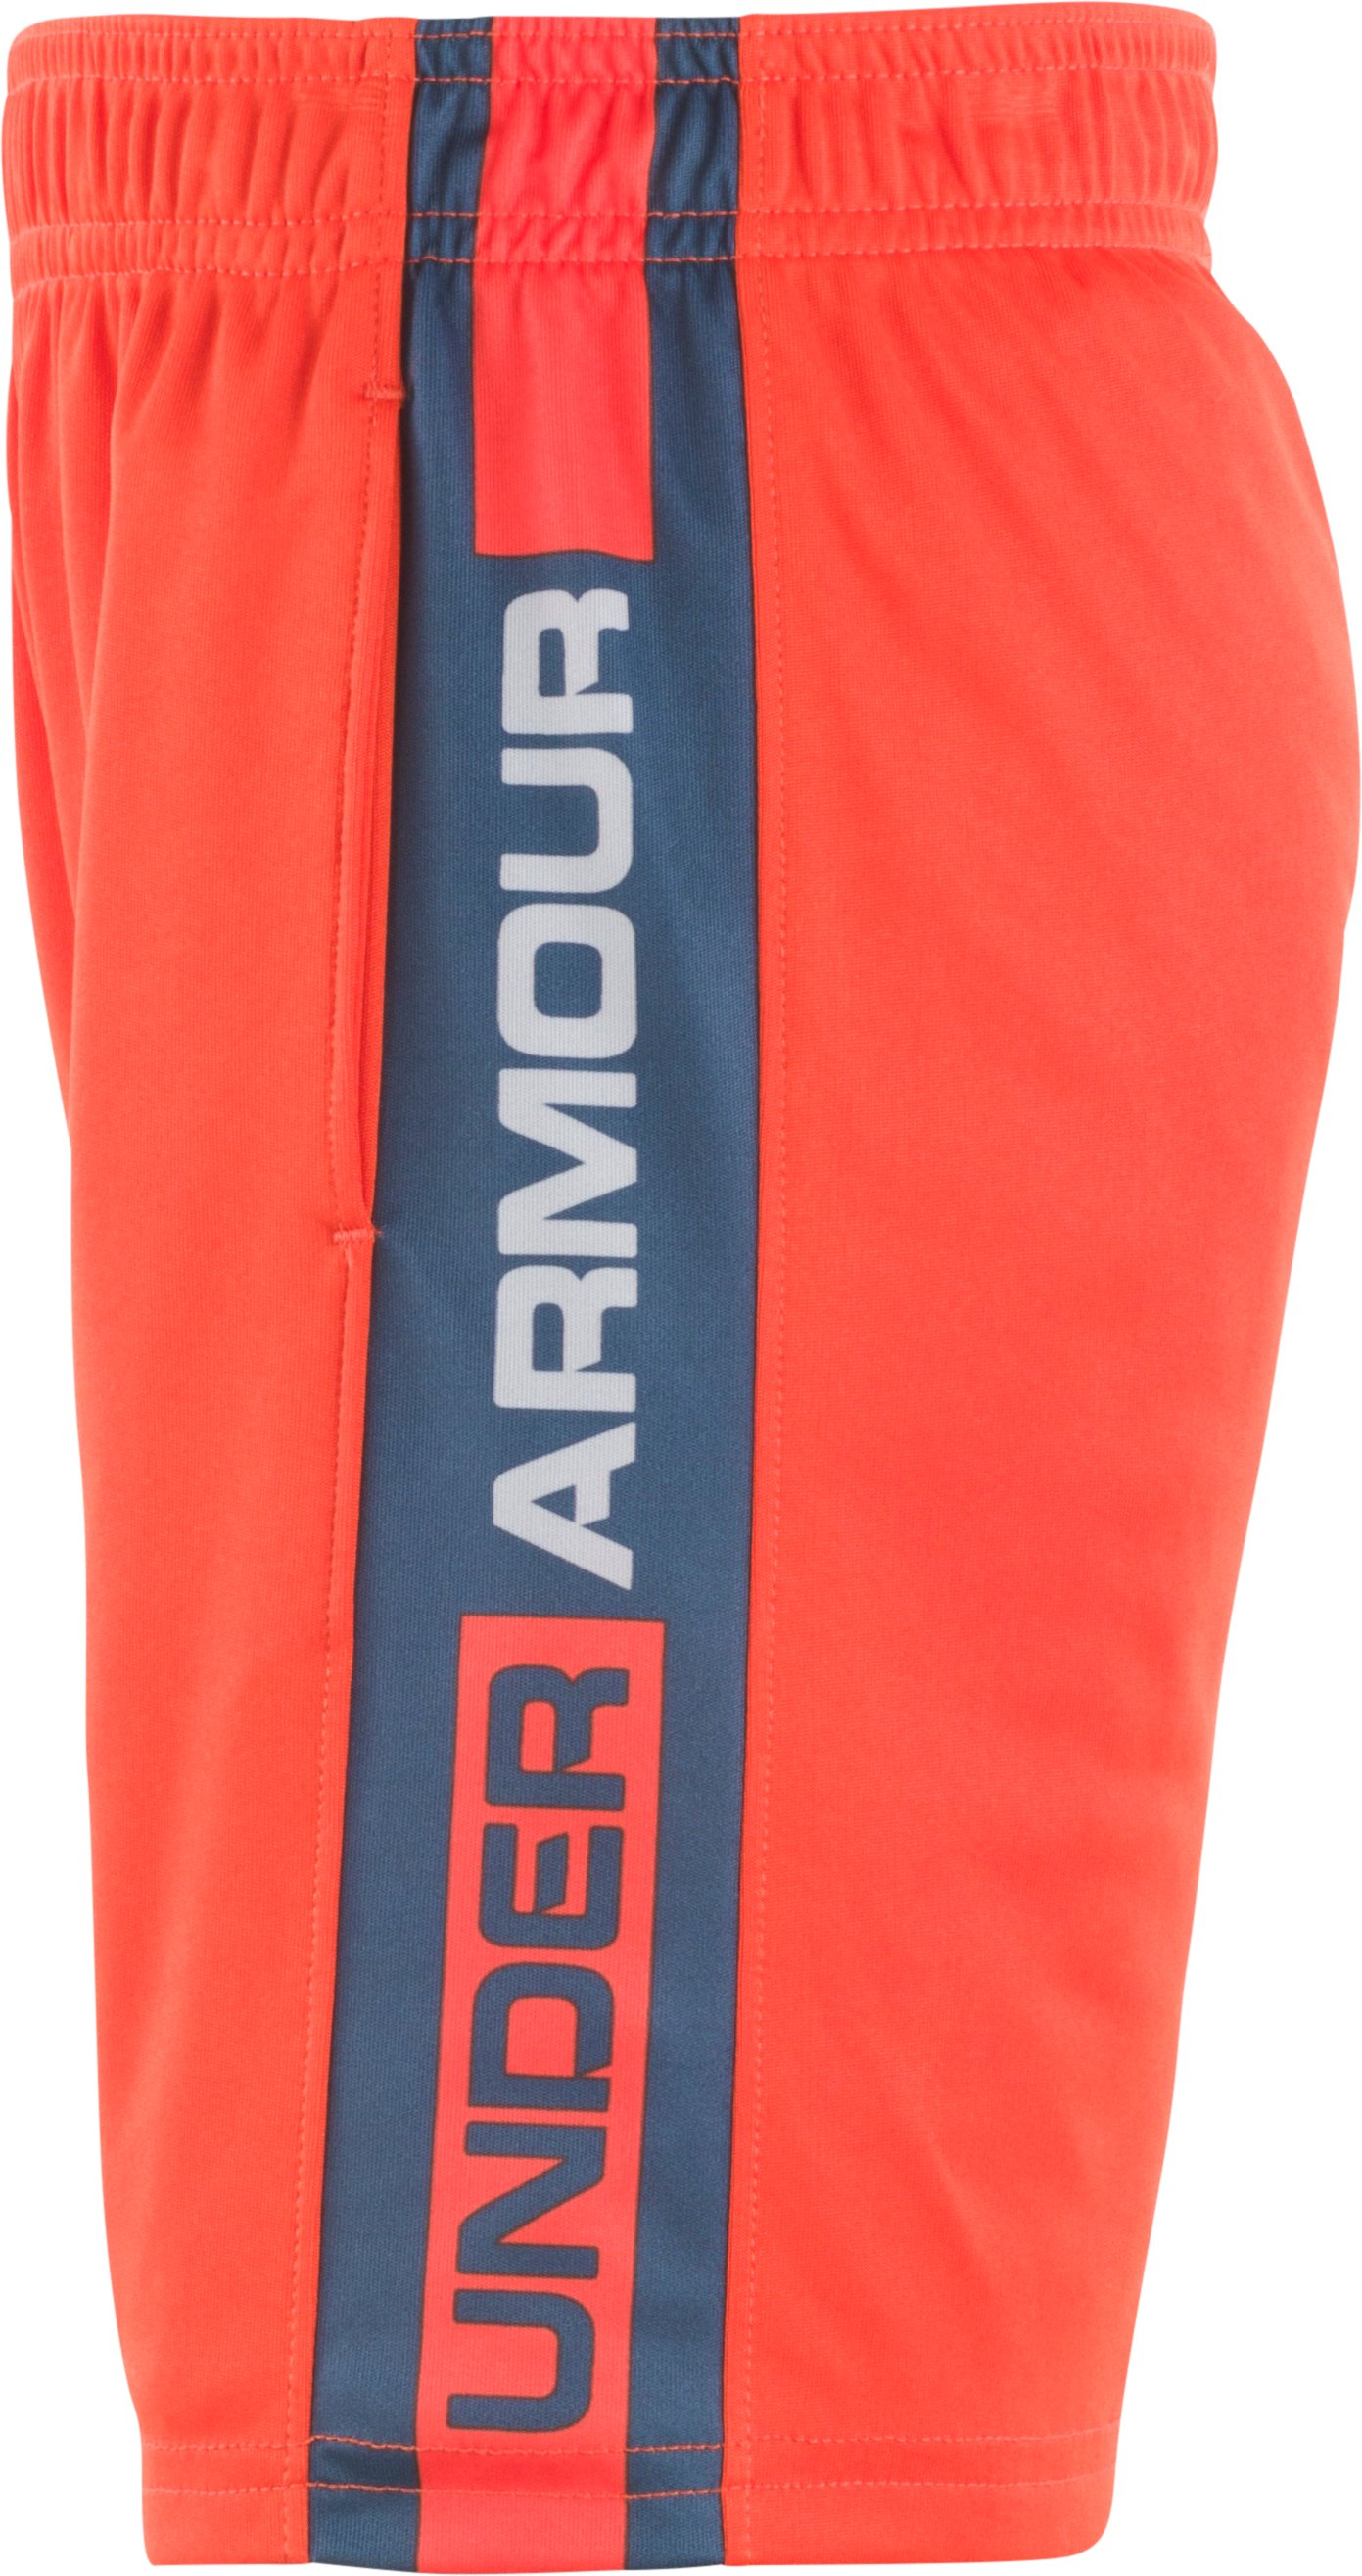 Boys' Pre-School UA Eliminator Shorts, Dark Orange